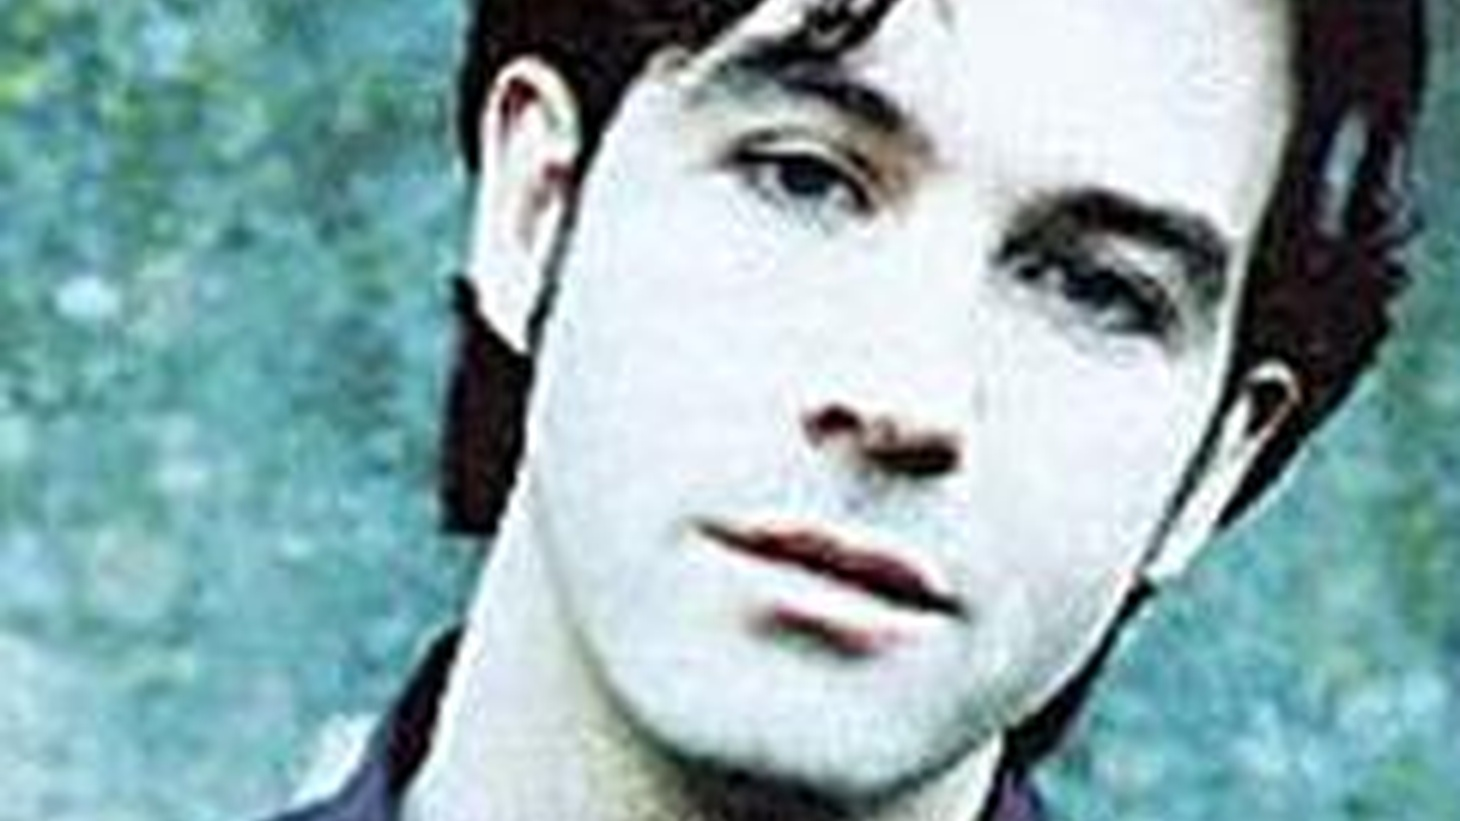 Singer Duncan Sheik brings a band to perform songs from his latest recording, White Limousine, on Morning Becomes Eclectic at 11:15am.